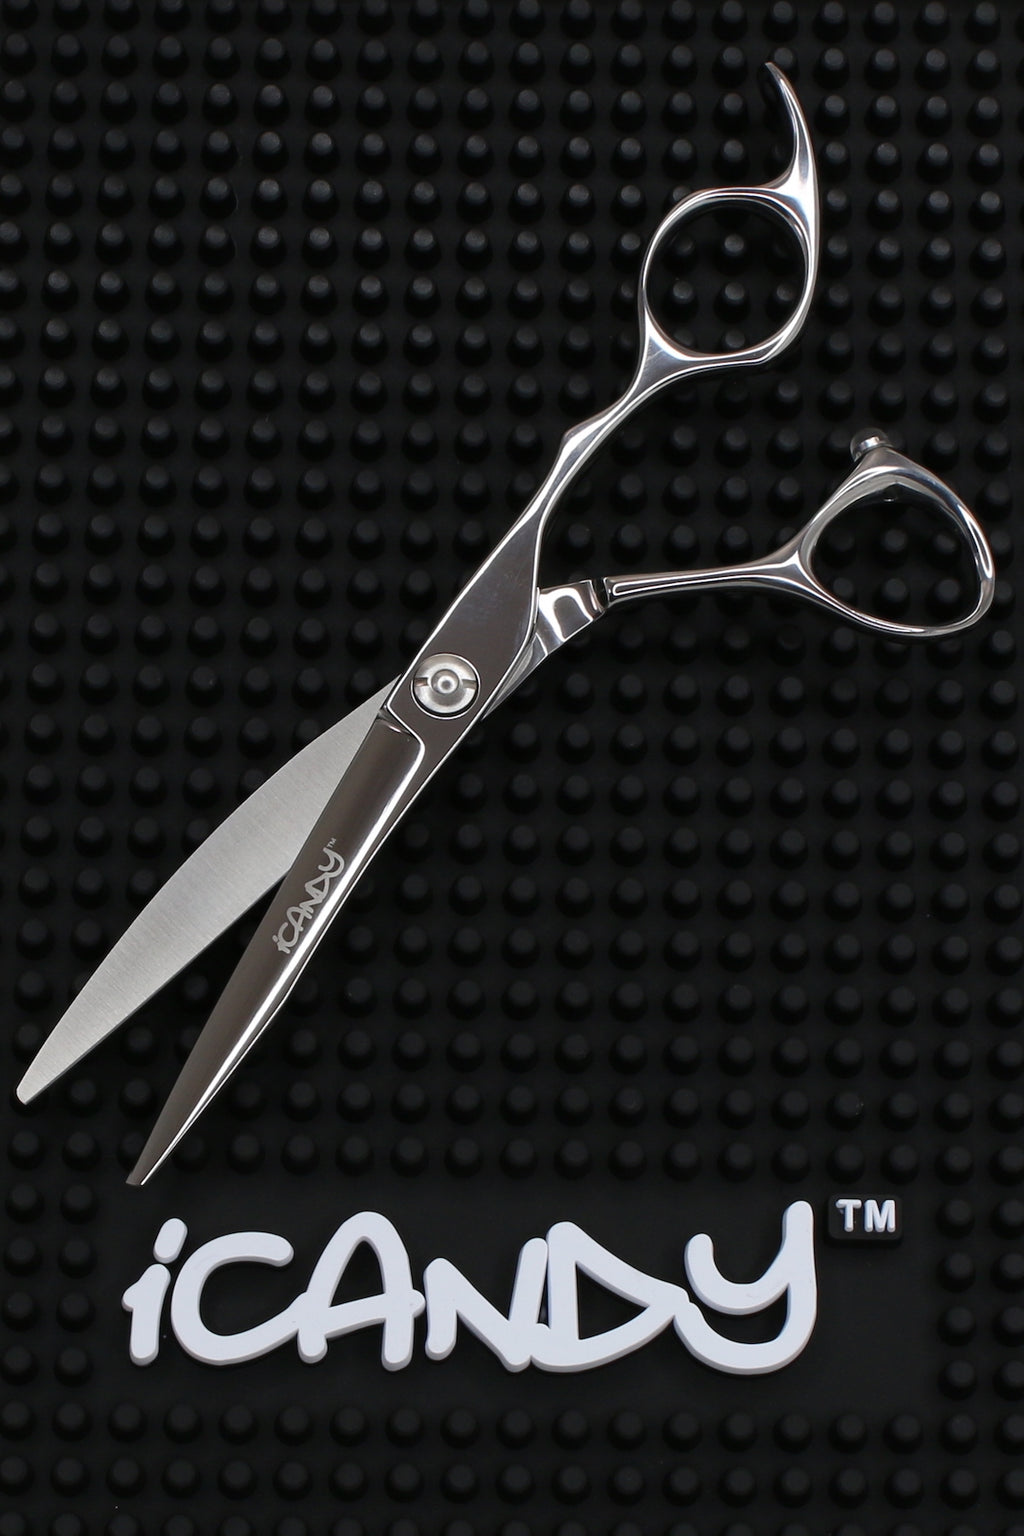 iCandy SWORD VG10 Scissors (6.0 inch) Limited Edition! - iCandy Scissors